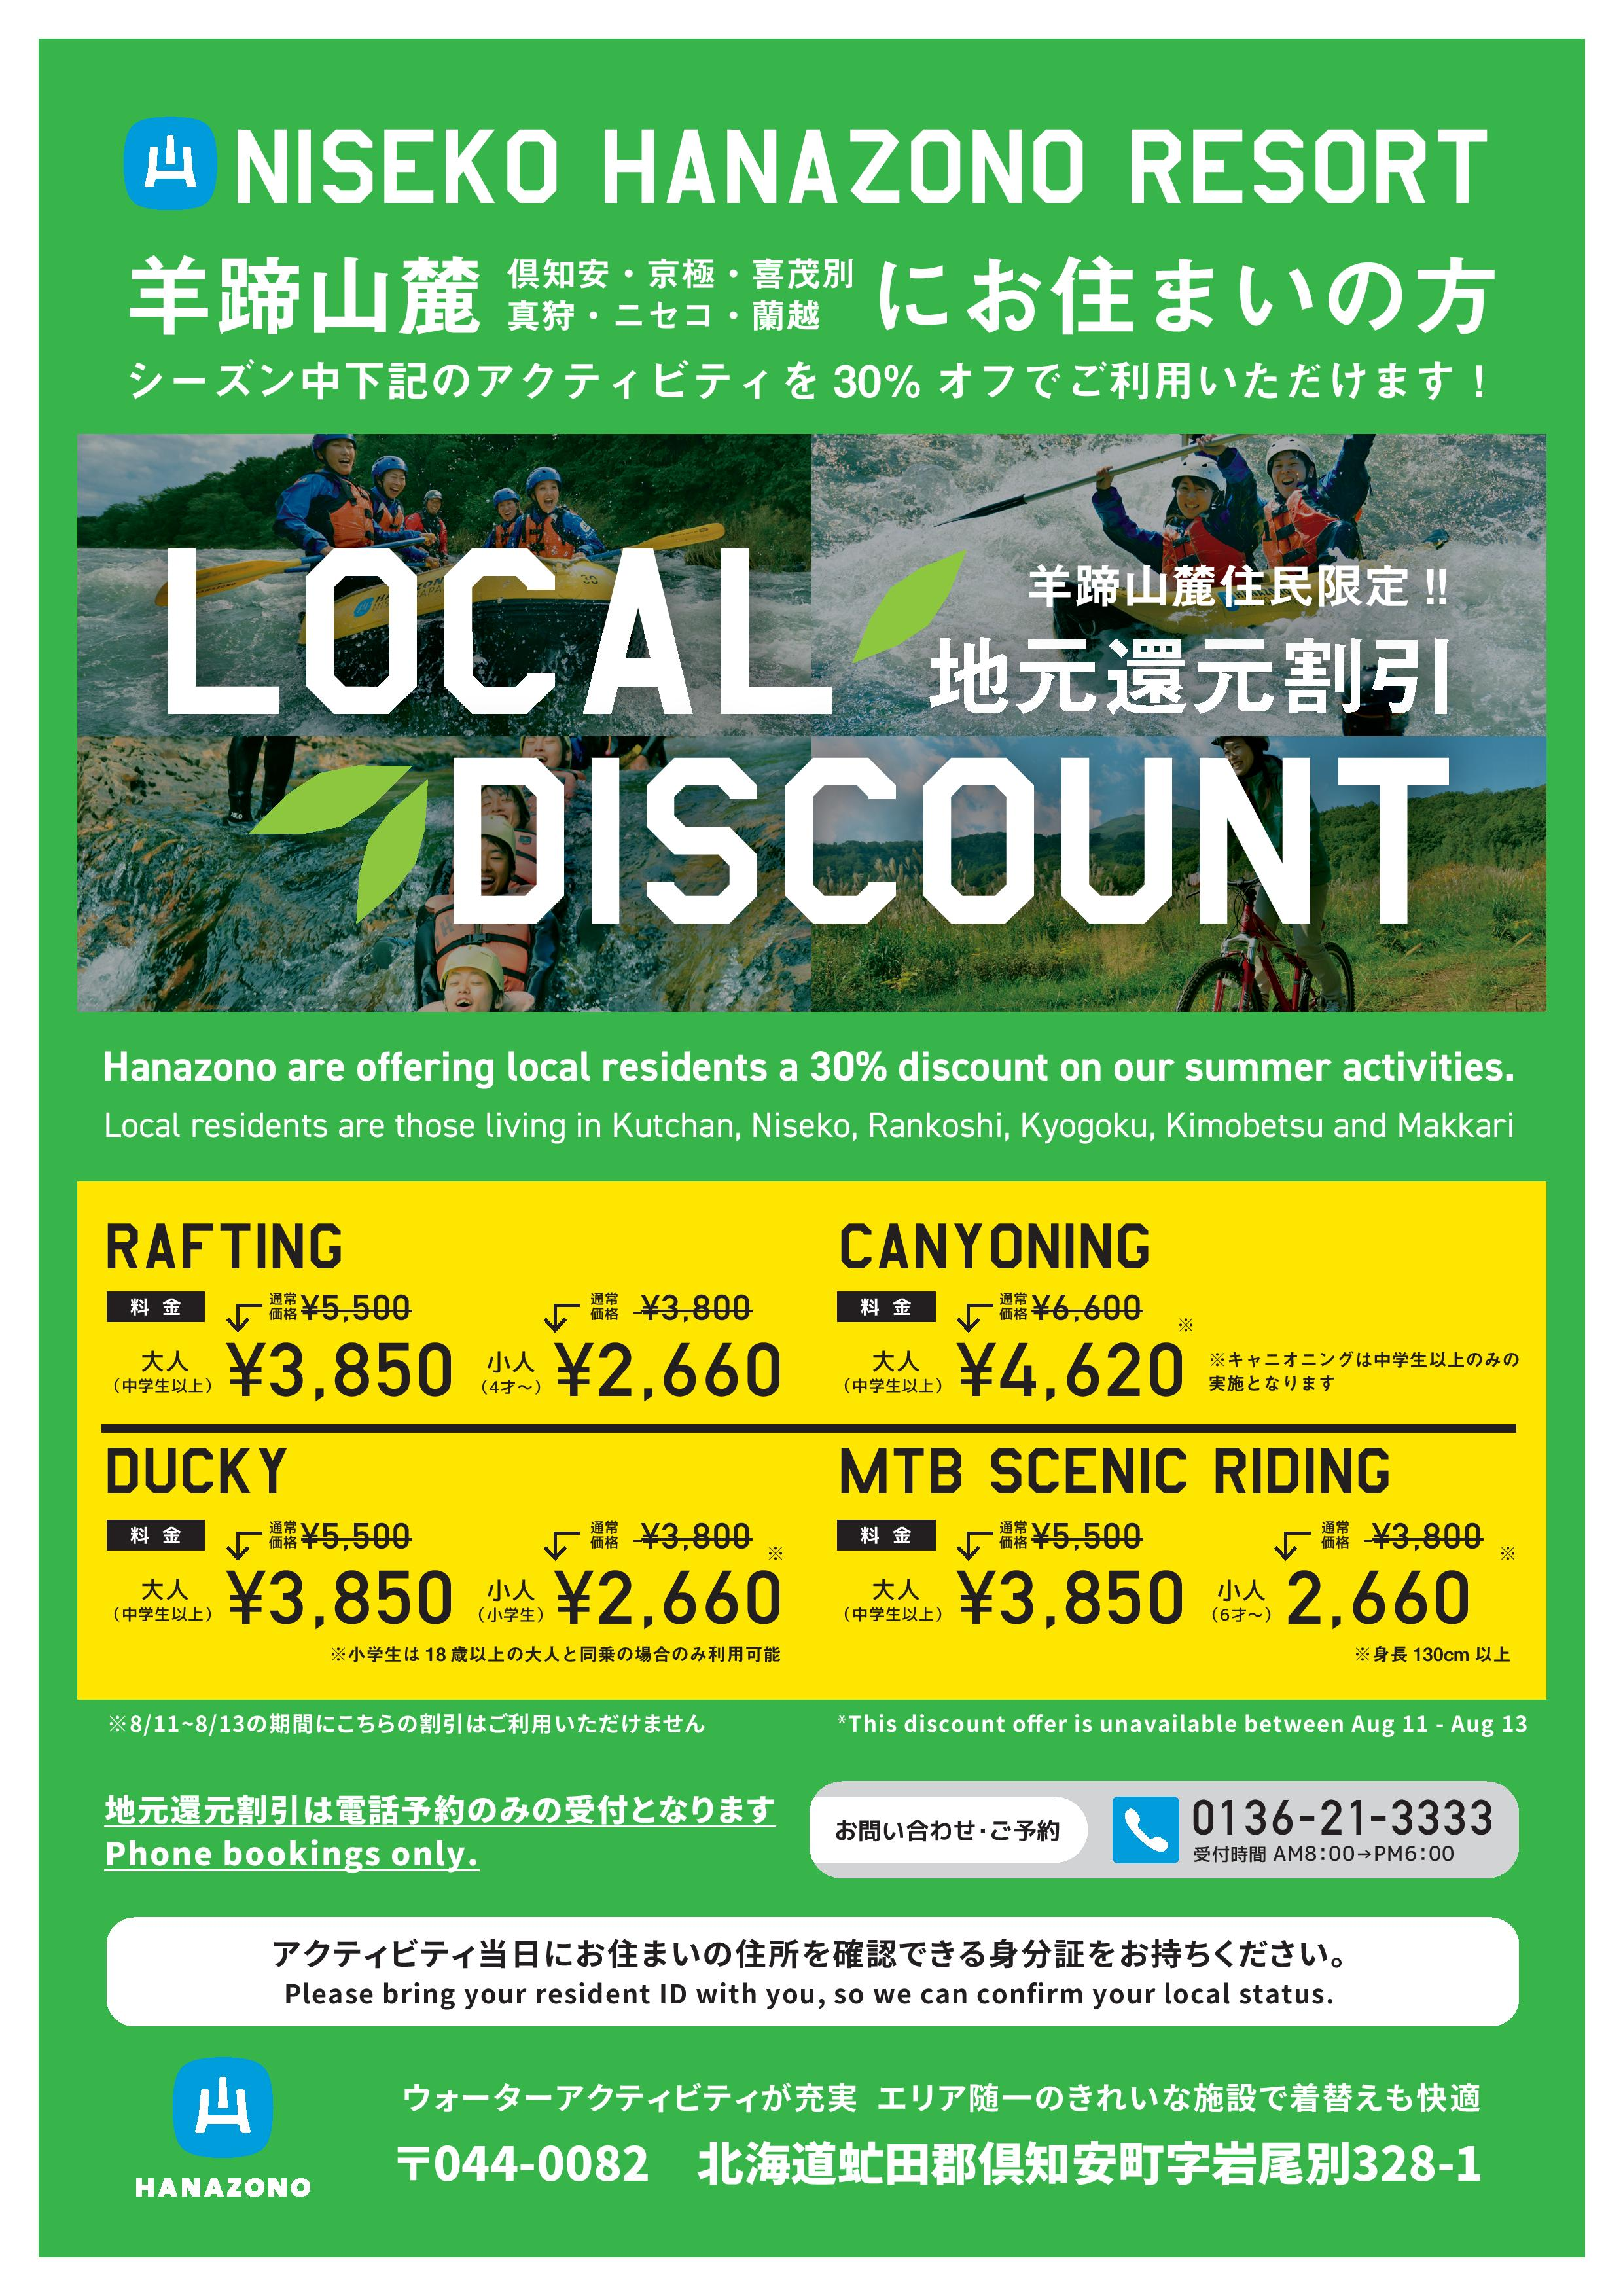 Special discount for the local residents